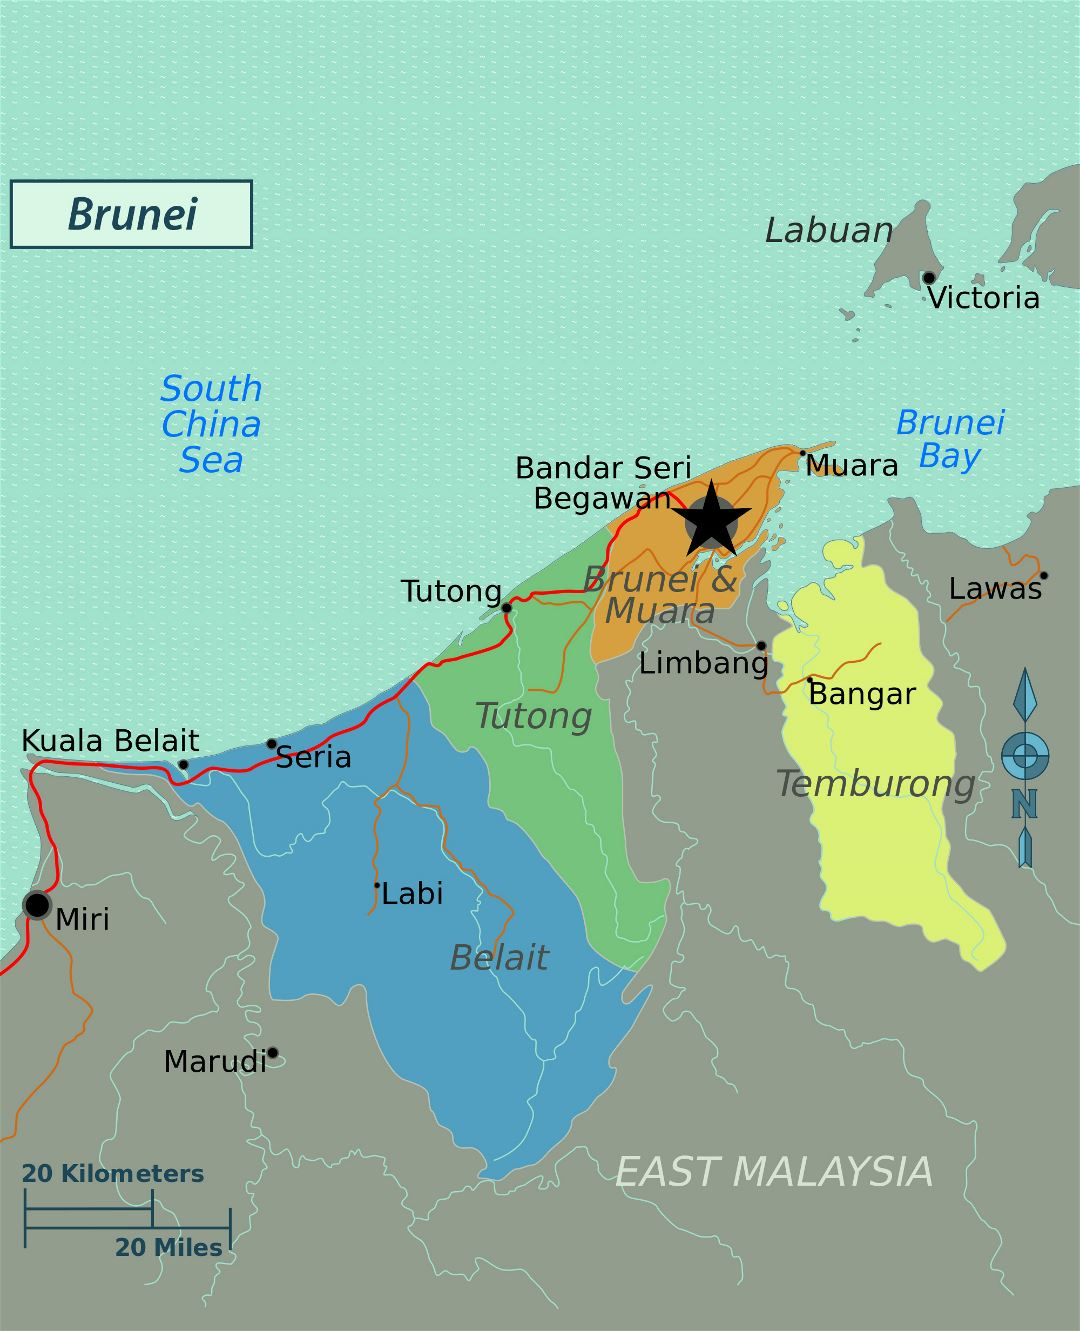 Large regions map of Brunei